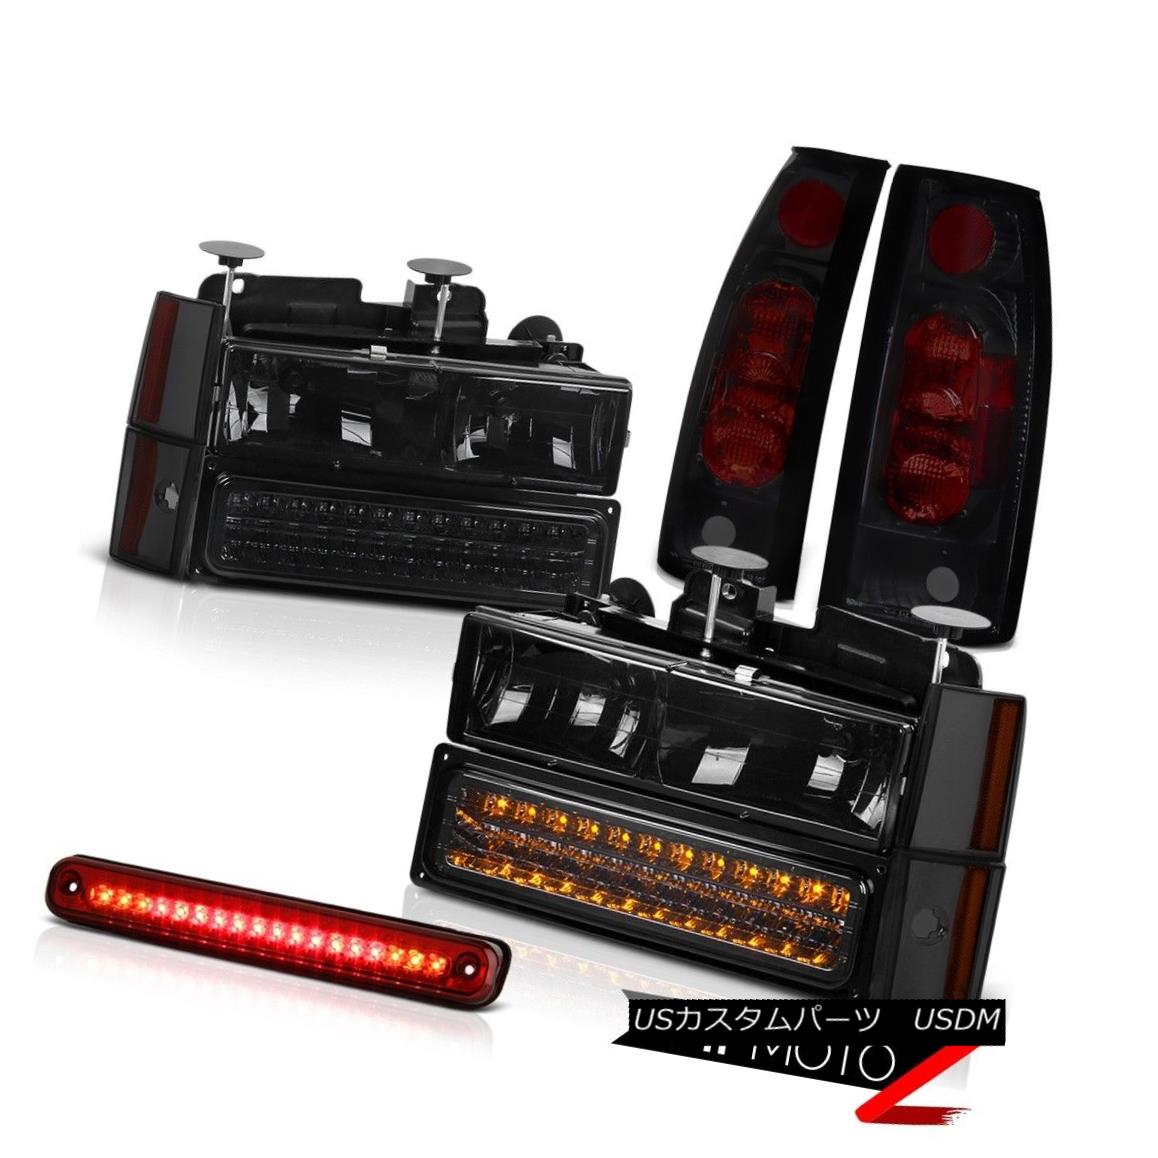 テールライト 1988-1993 Chevy C/K DARK SMOKE LED Signal Bumper Headlight Taillamp SMD 3RD Cab 1988-1993 Chevy C / K DARK SMOKE LEDシグナルバンパーヘッドライトタイルランプSMD 3RDキャブ